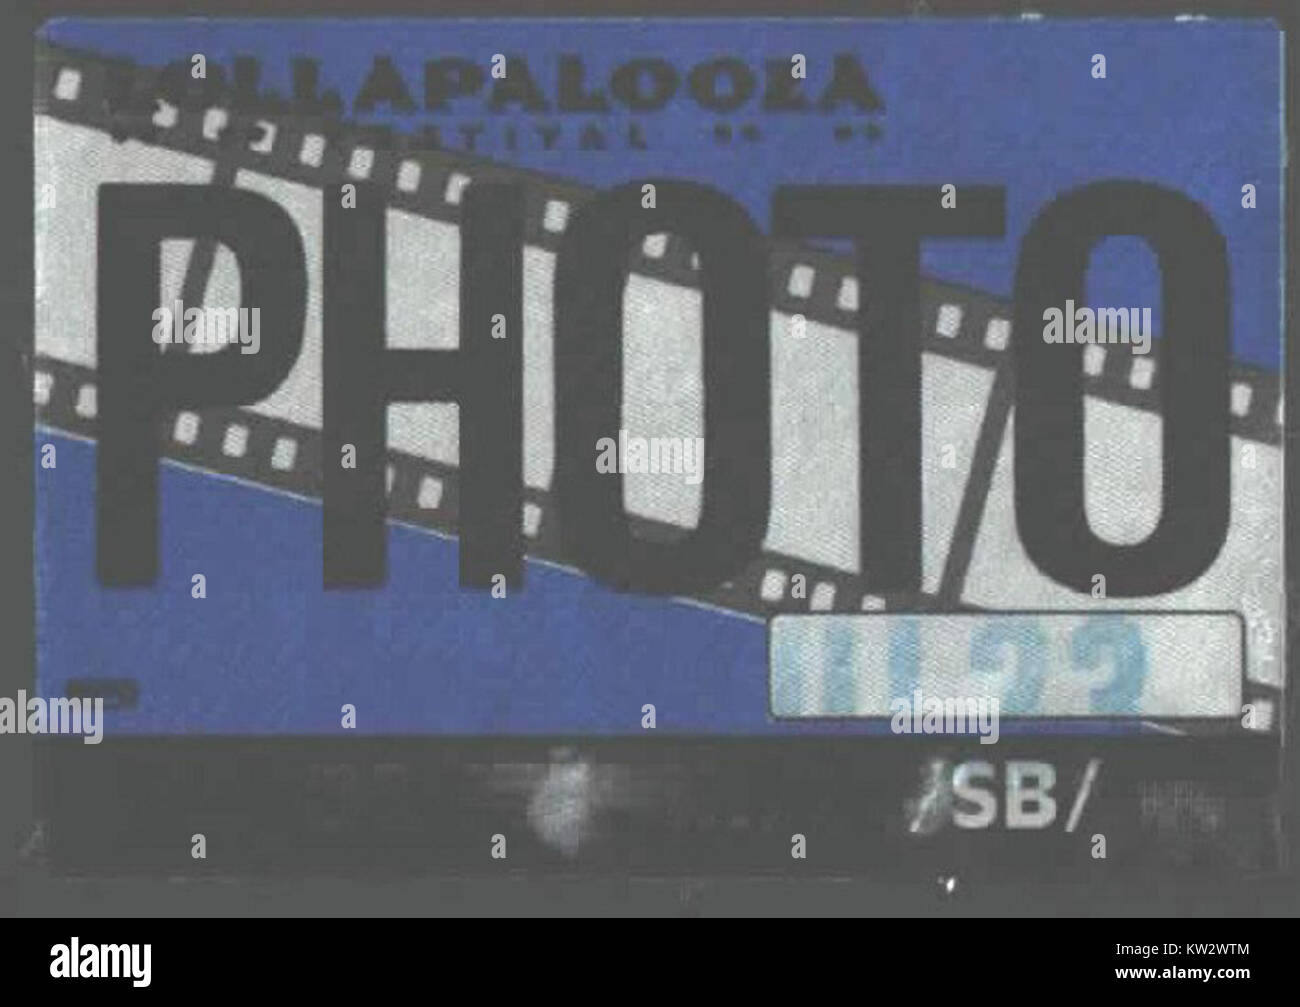 Siouxsie and the Banshees photopass at the 1991 Lollapalooza - Stock Image